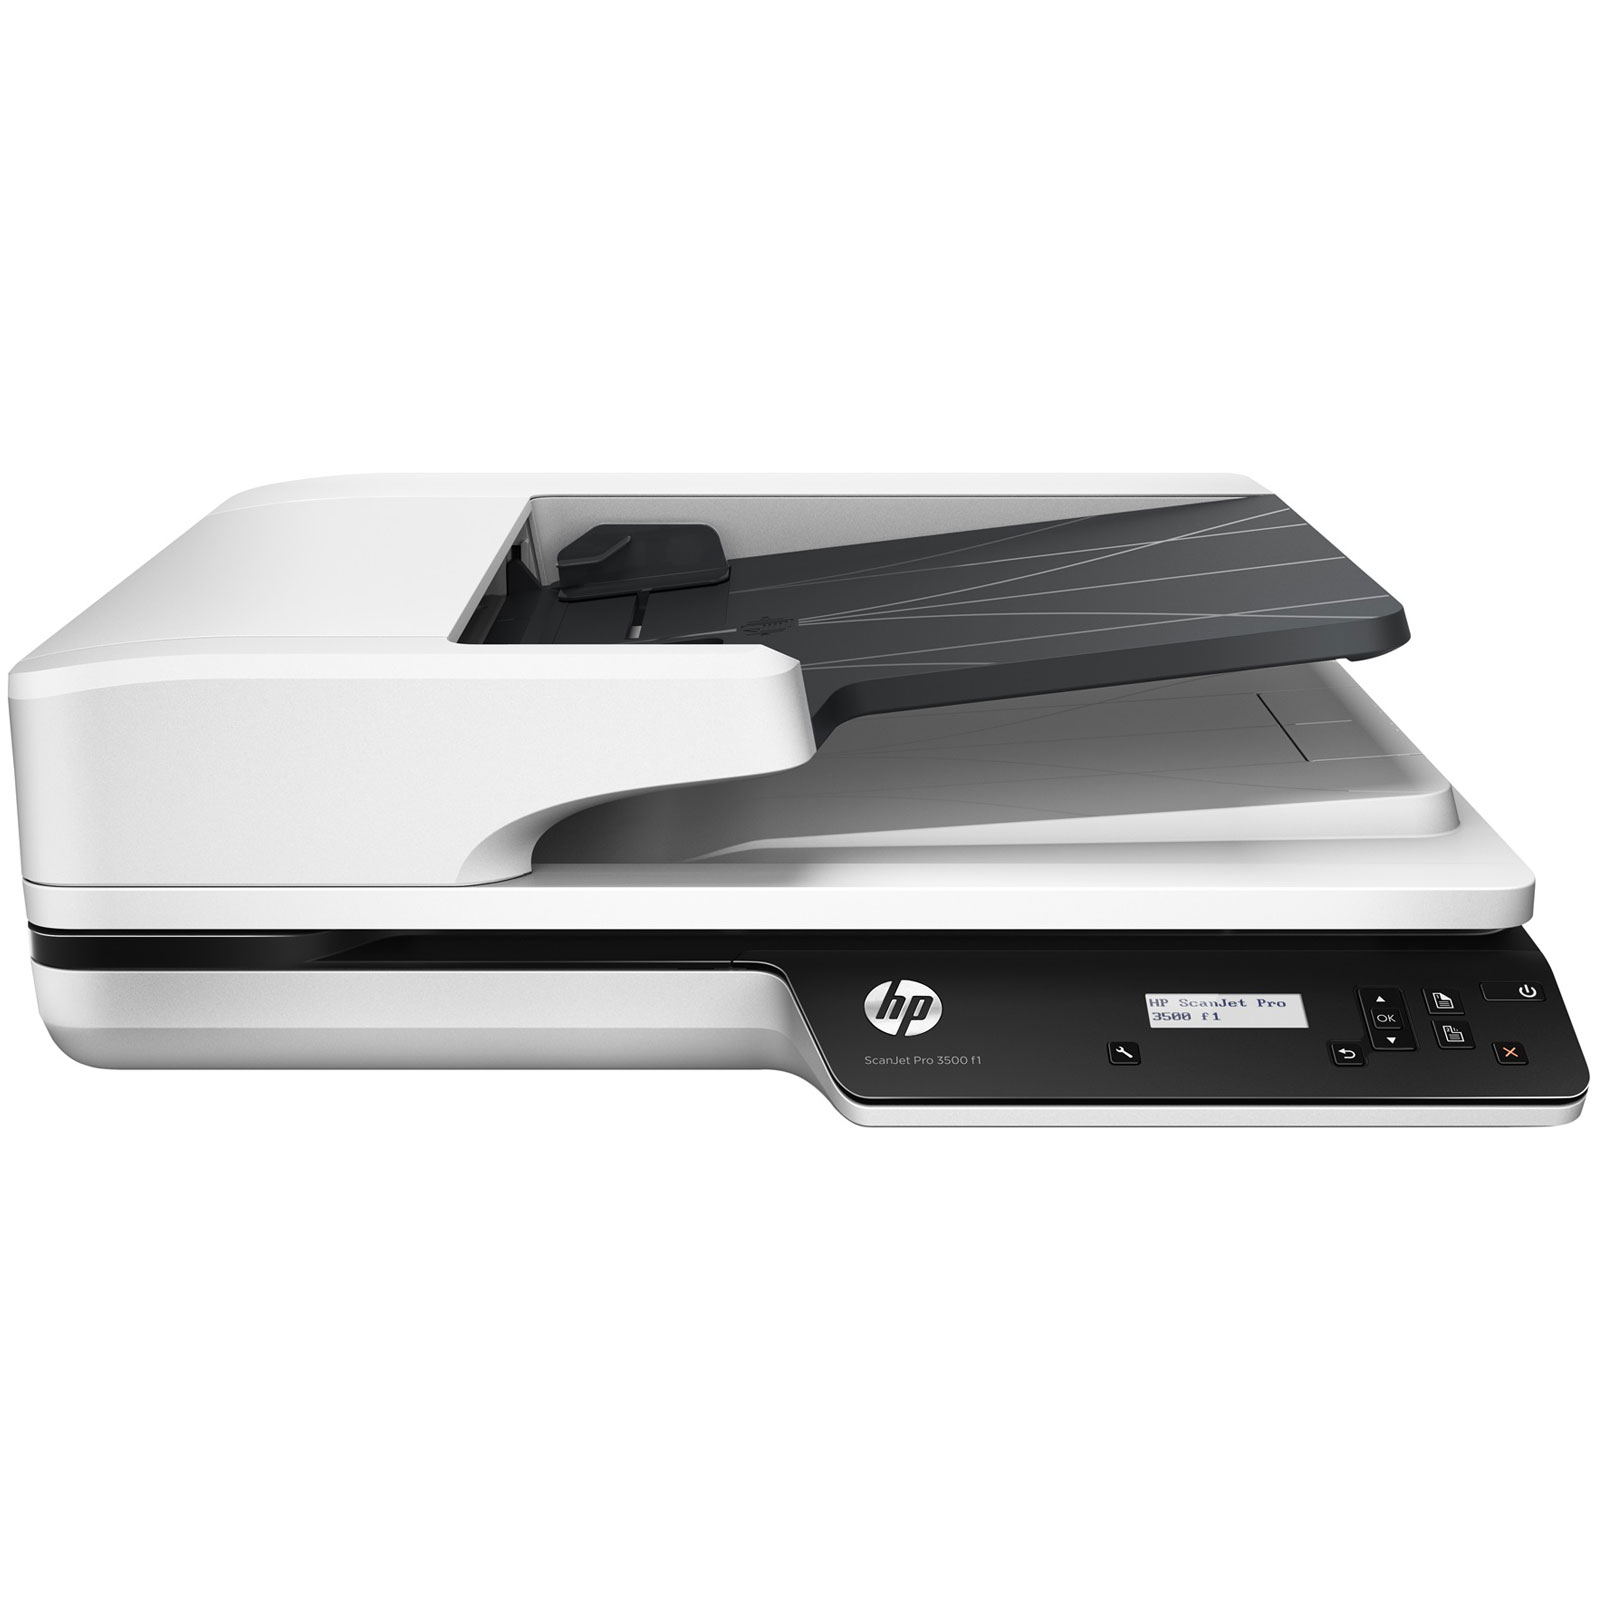 hp scanjet pro 3500 f1 scanner hp sur ldlc. Black Bedroom Furniture Sets. Home Design Ideas